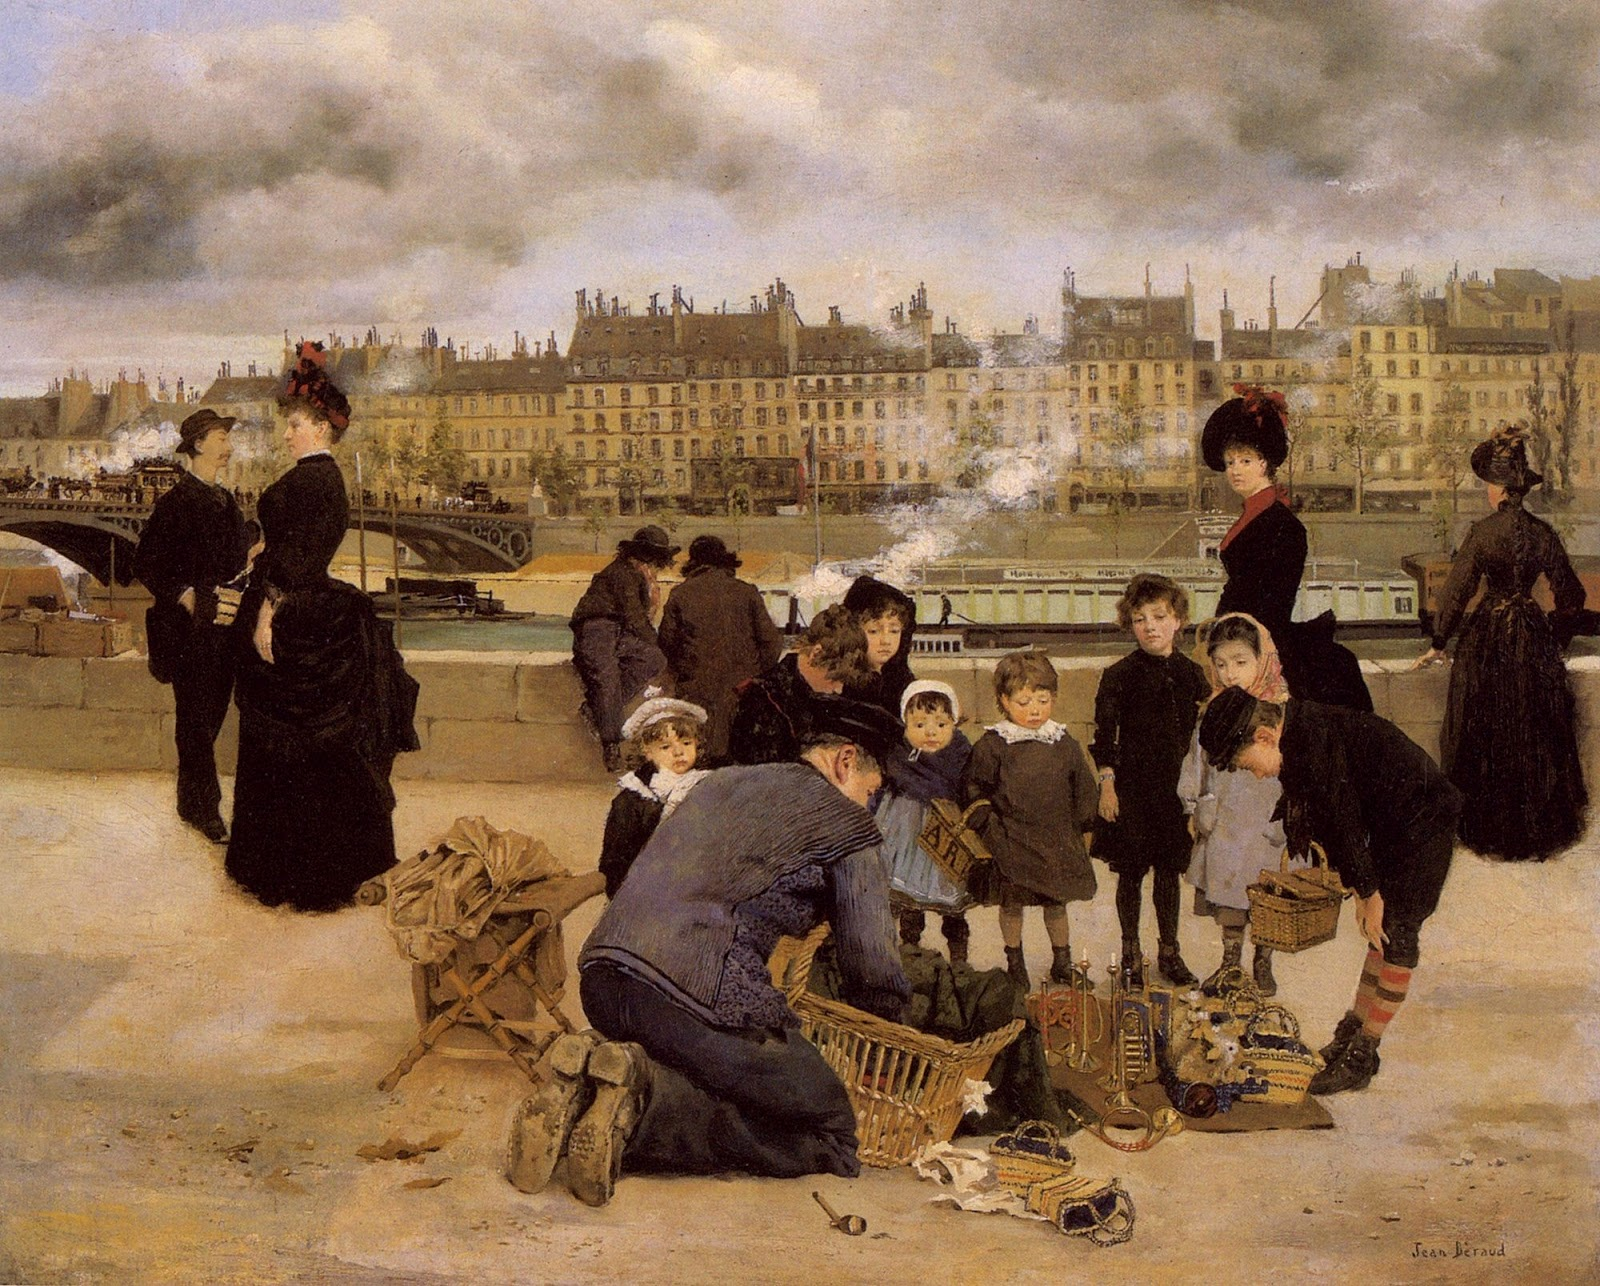 Jean    C Araud  Children  With  a  Toy  Seller  on  the  Quai  du  Louvre